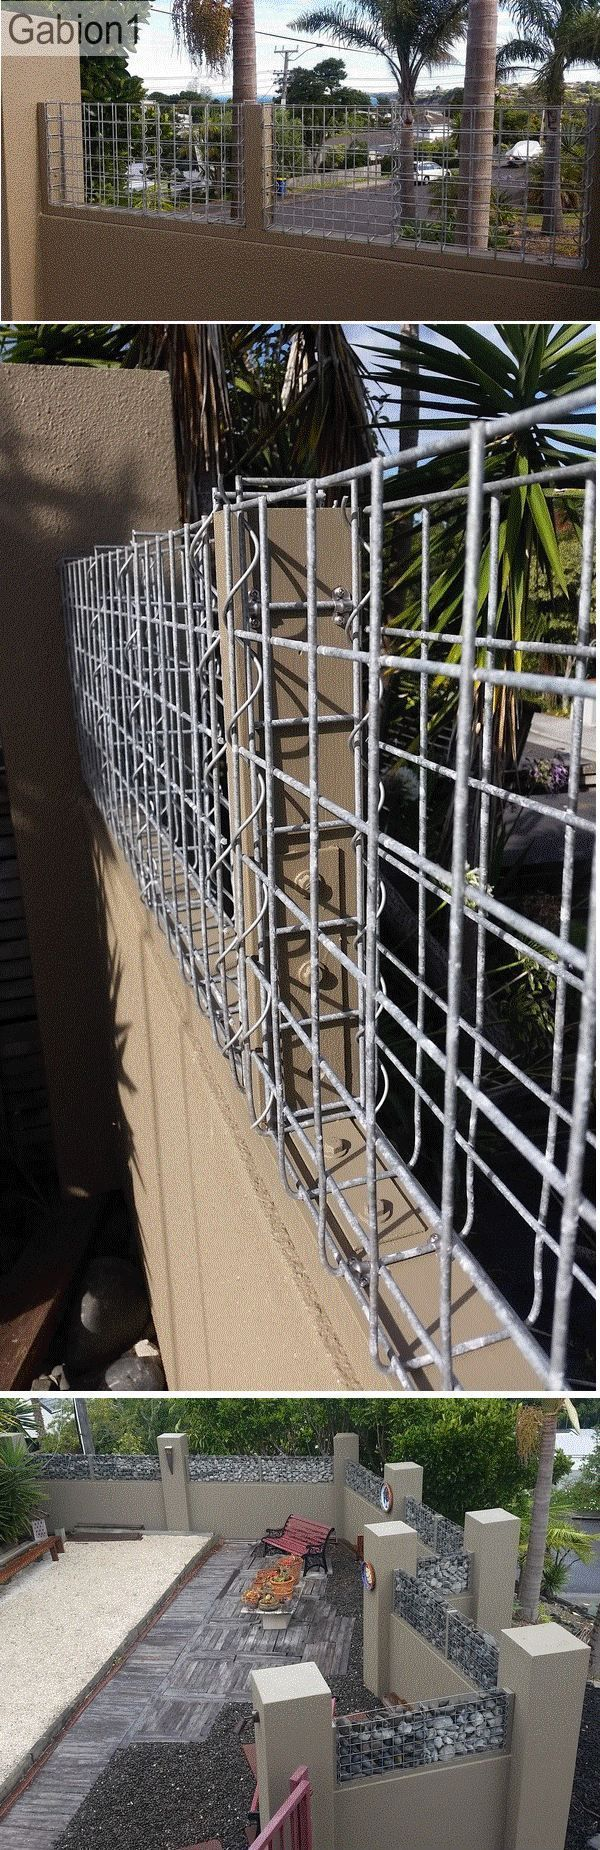 gabion capped plaster wall detail using 75mm thick folded gabion http://www.gabion1.co.nz